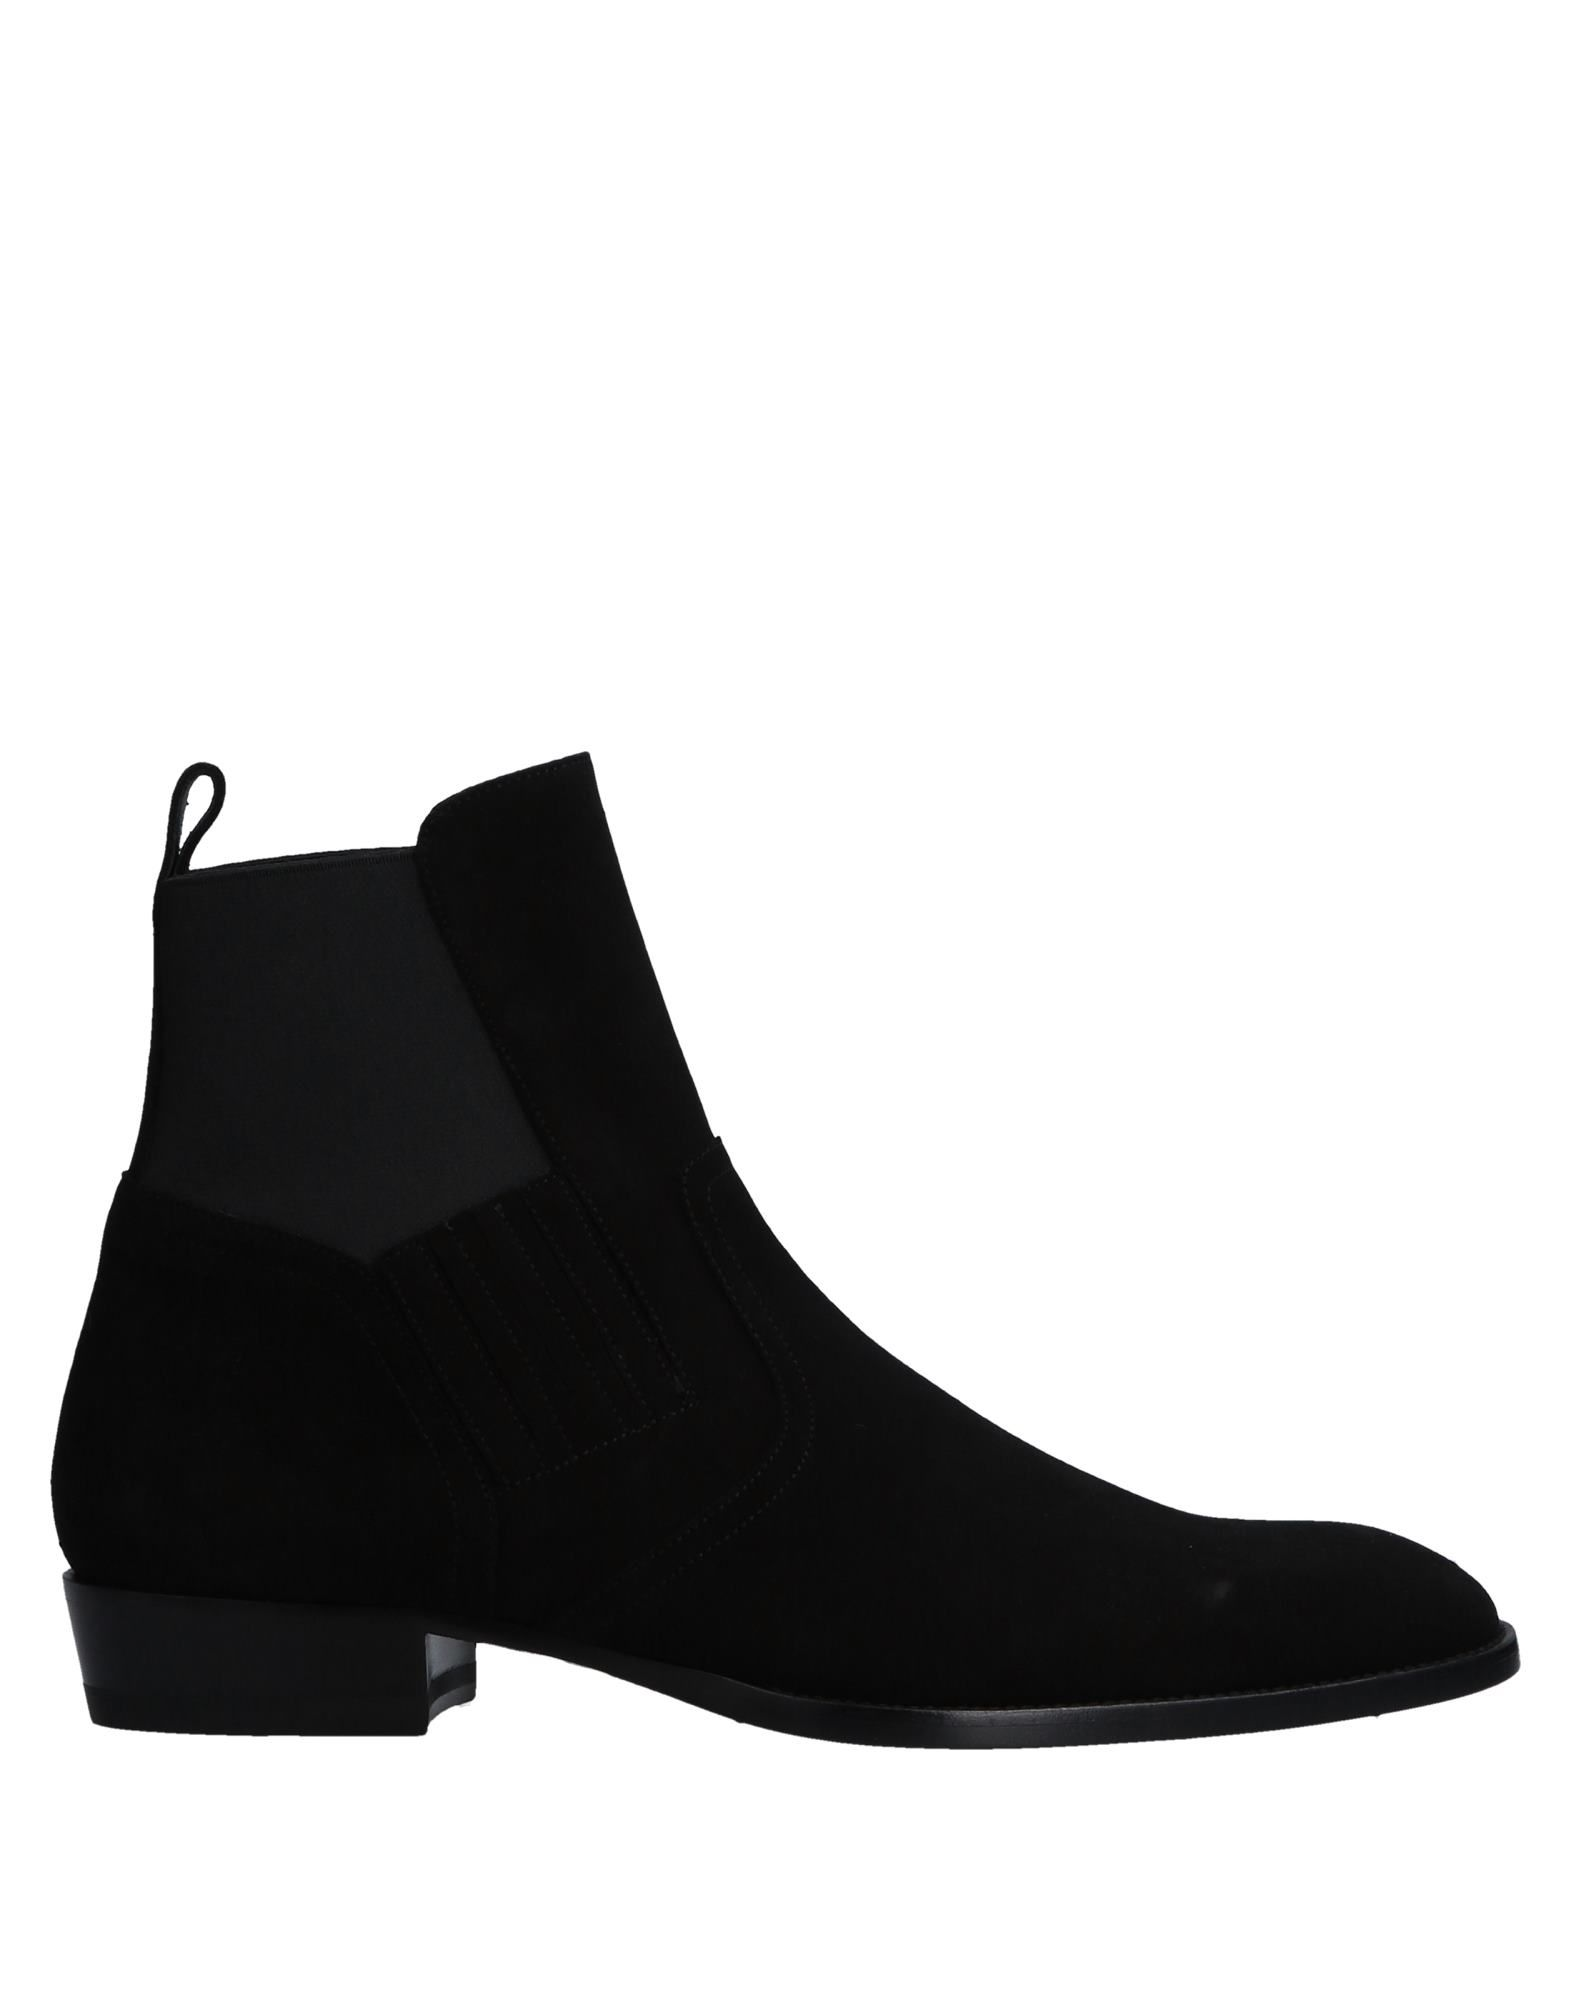 Bottine Saint Laurent Homme - Bottines Saint Laurent  Noir Mode pas cher et belle